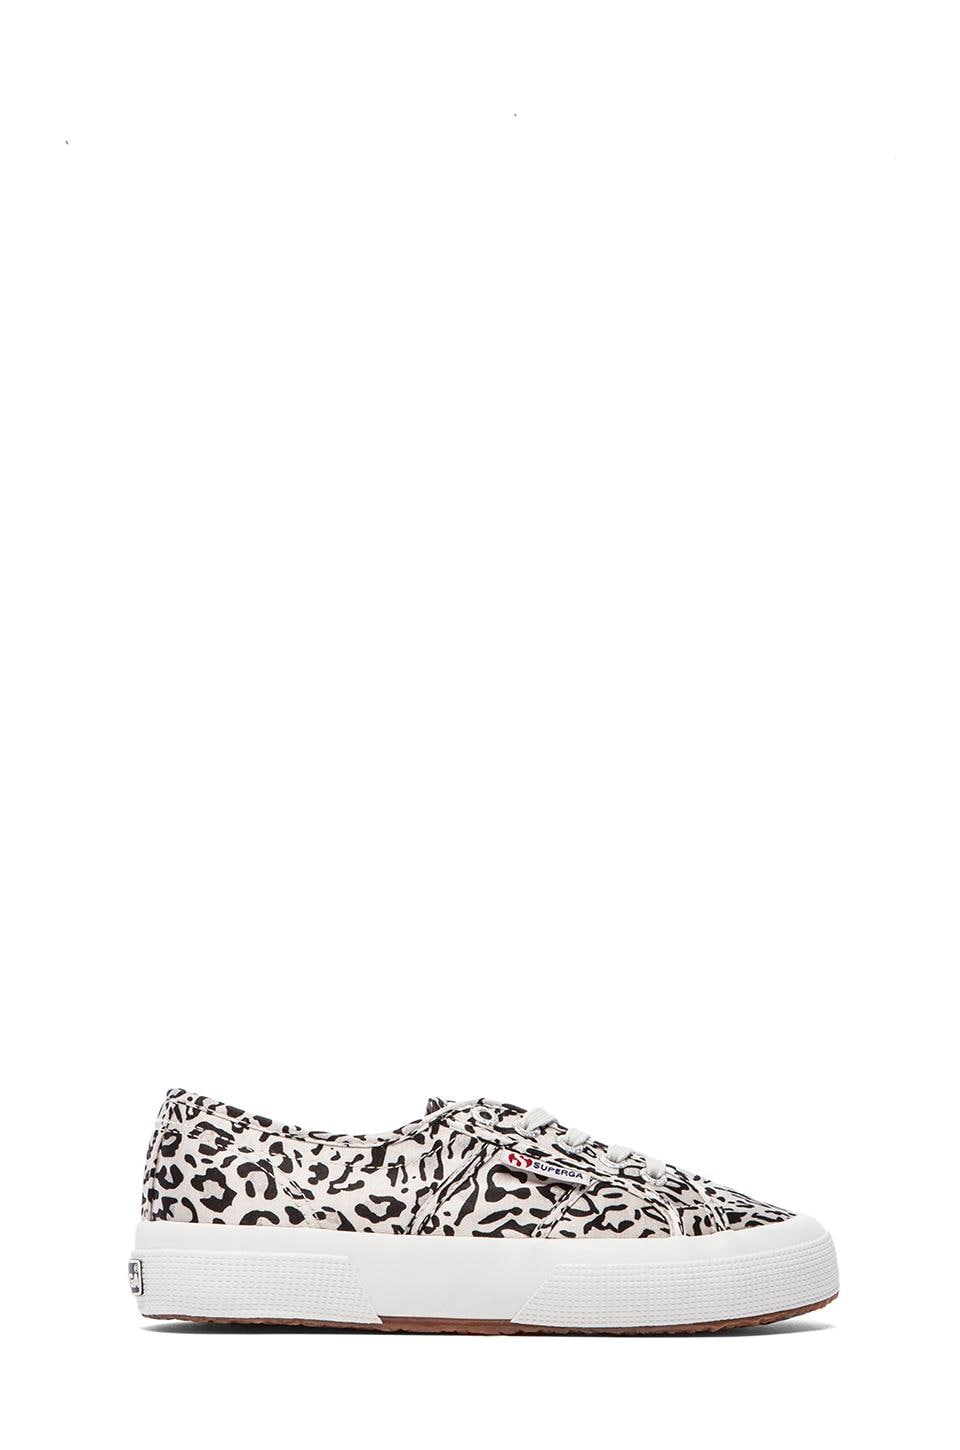 Superga Paianimals Sneakers in Light Grey & Black